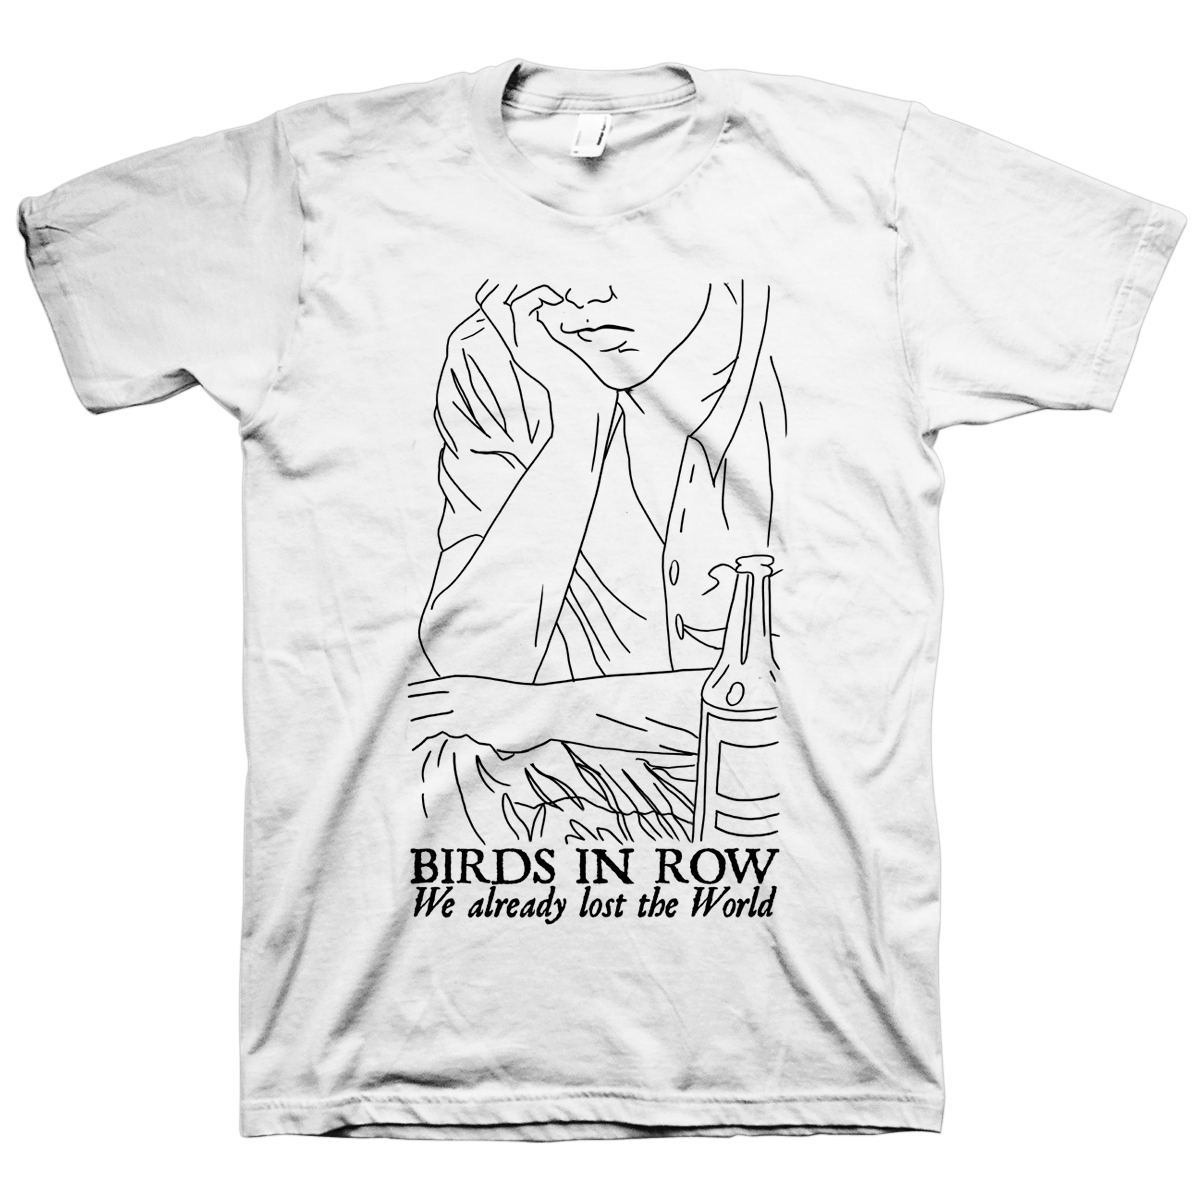 White drawing t shirt. Birds in row deathwish